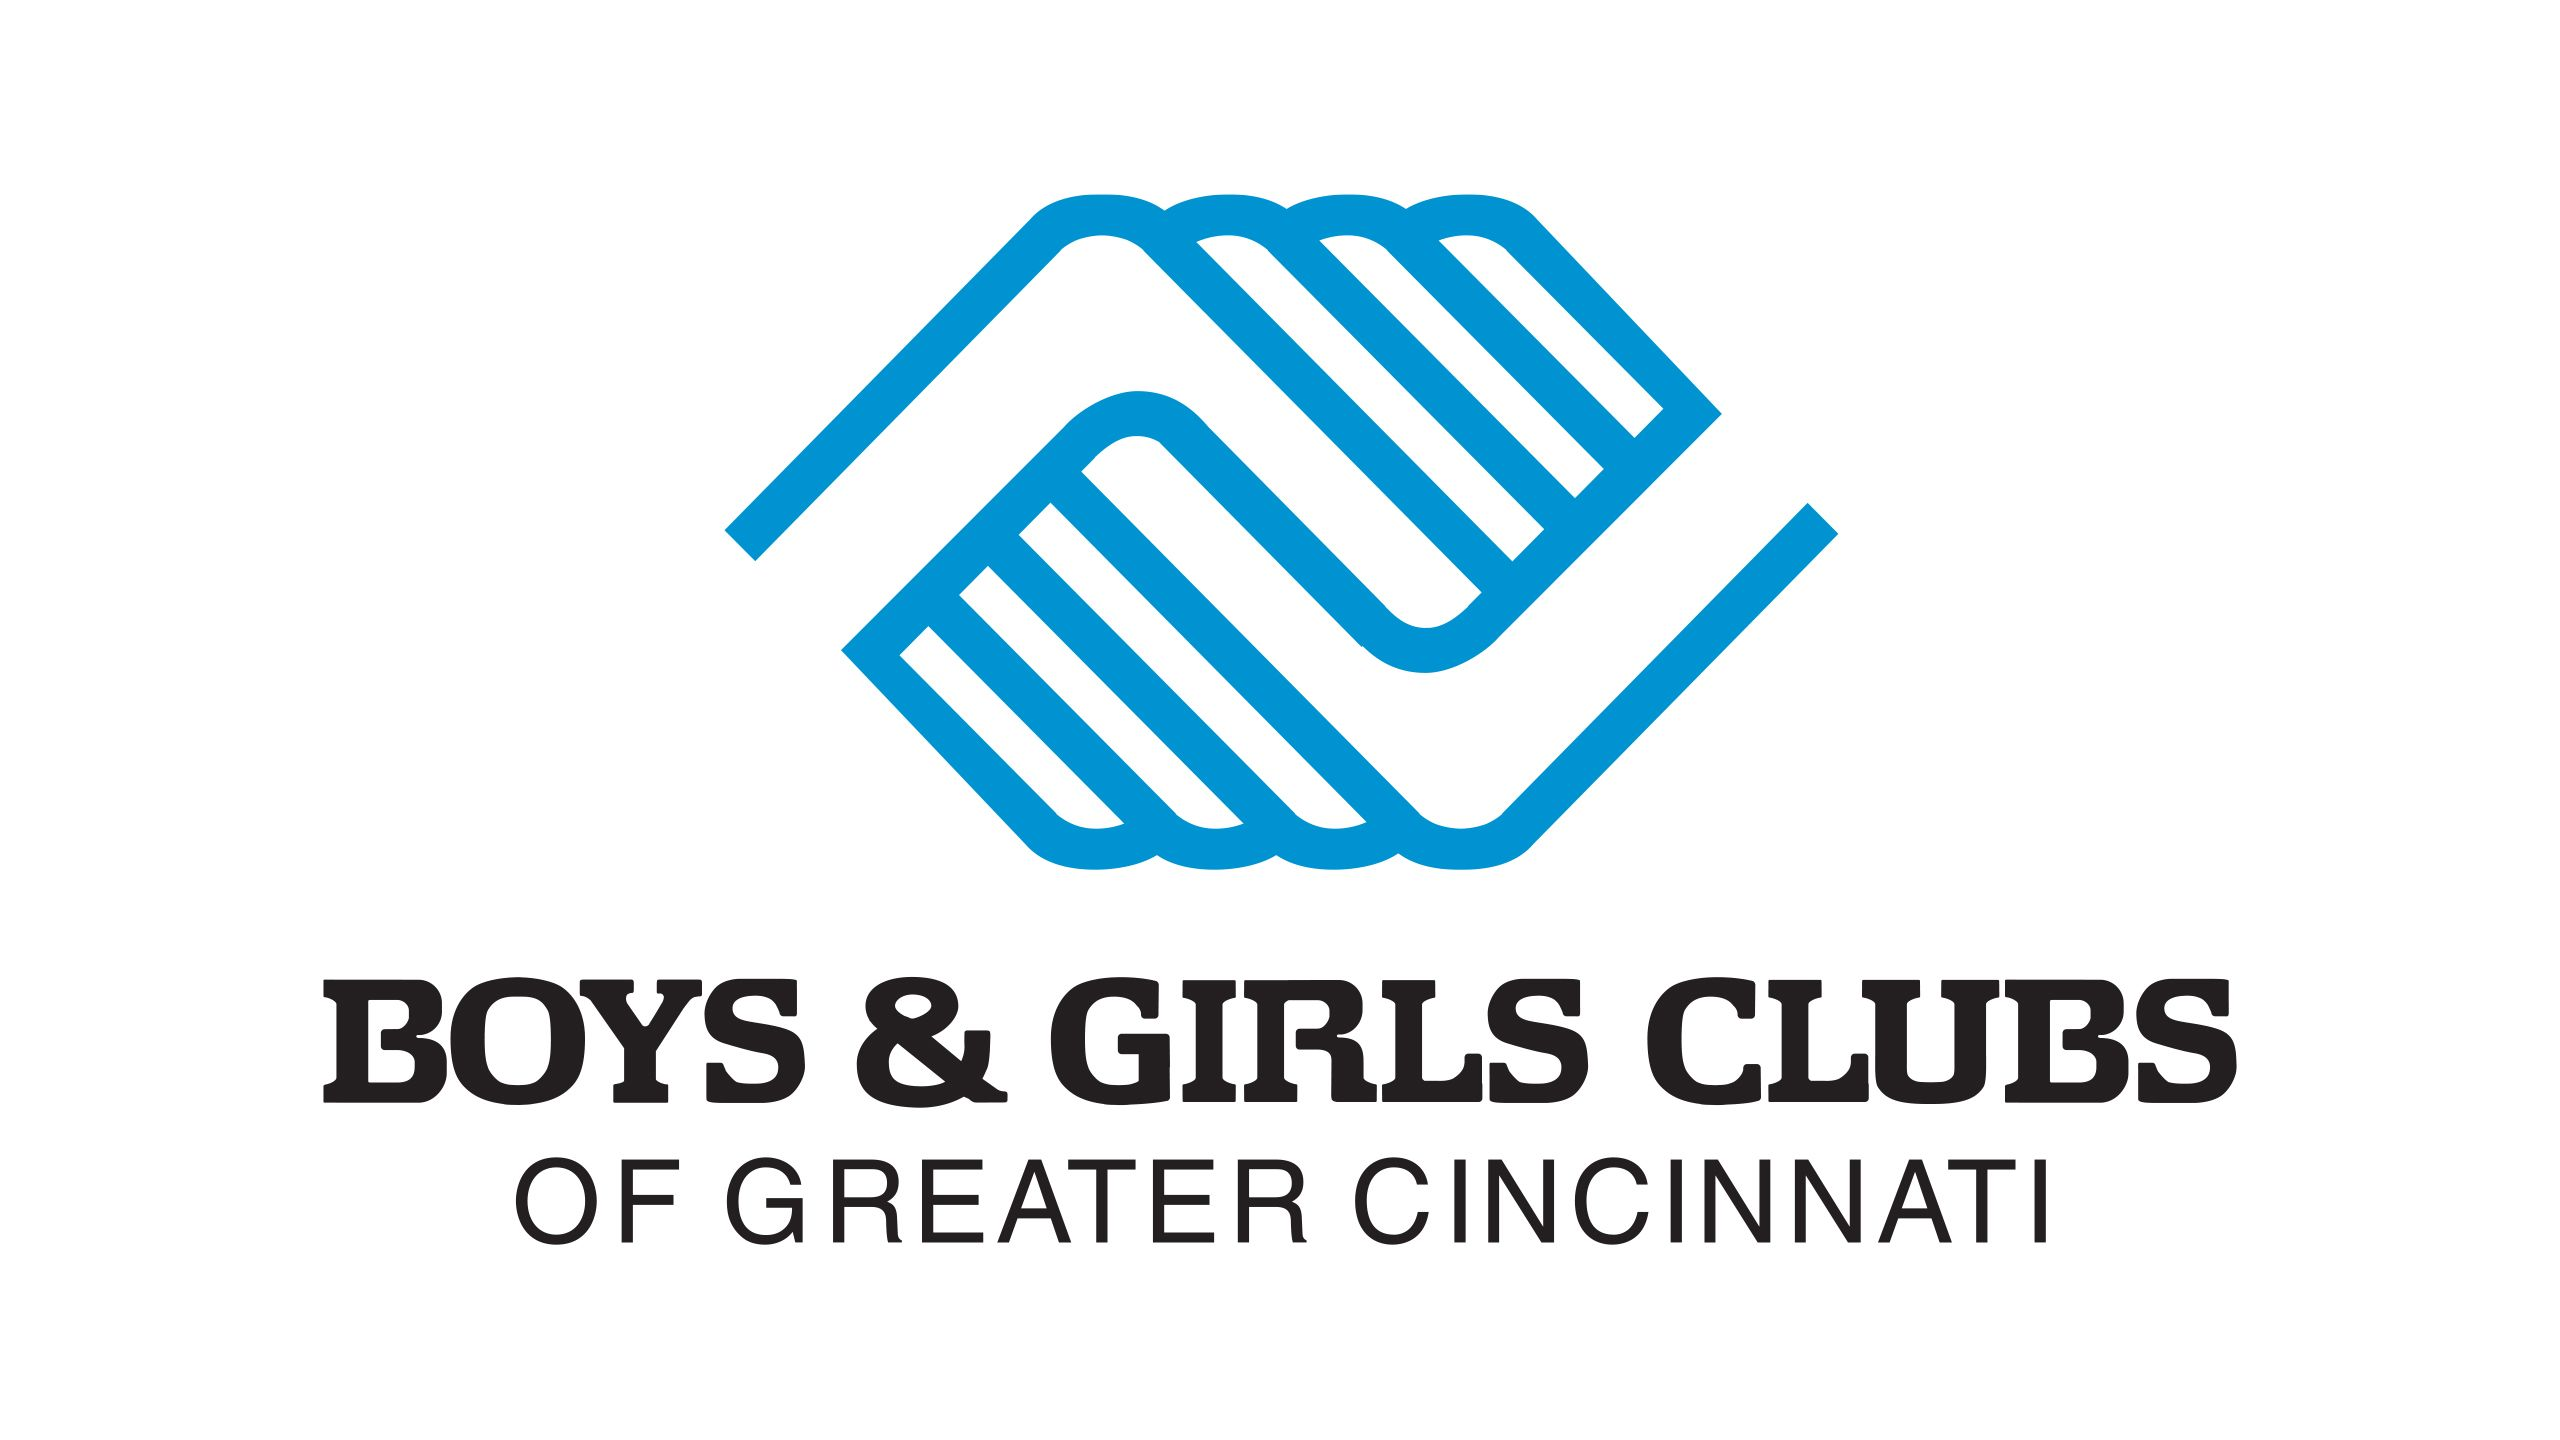 Boys & Girls Club of Greater Cincinnati